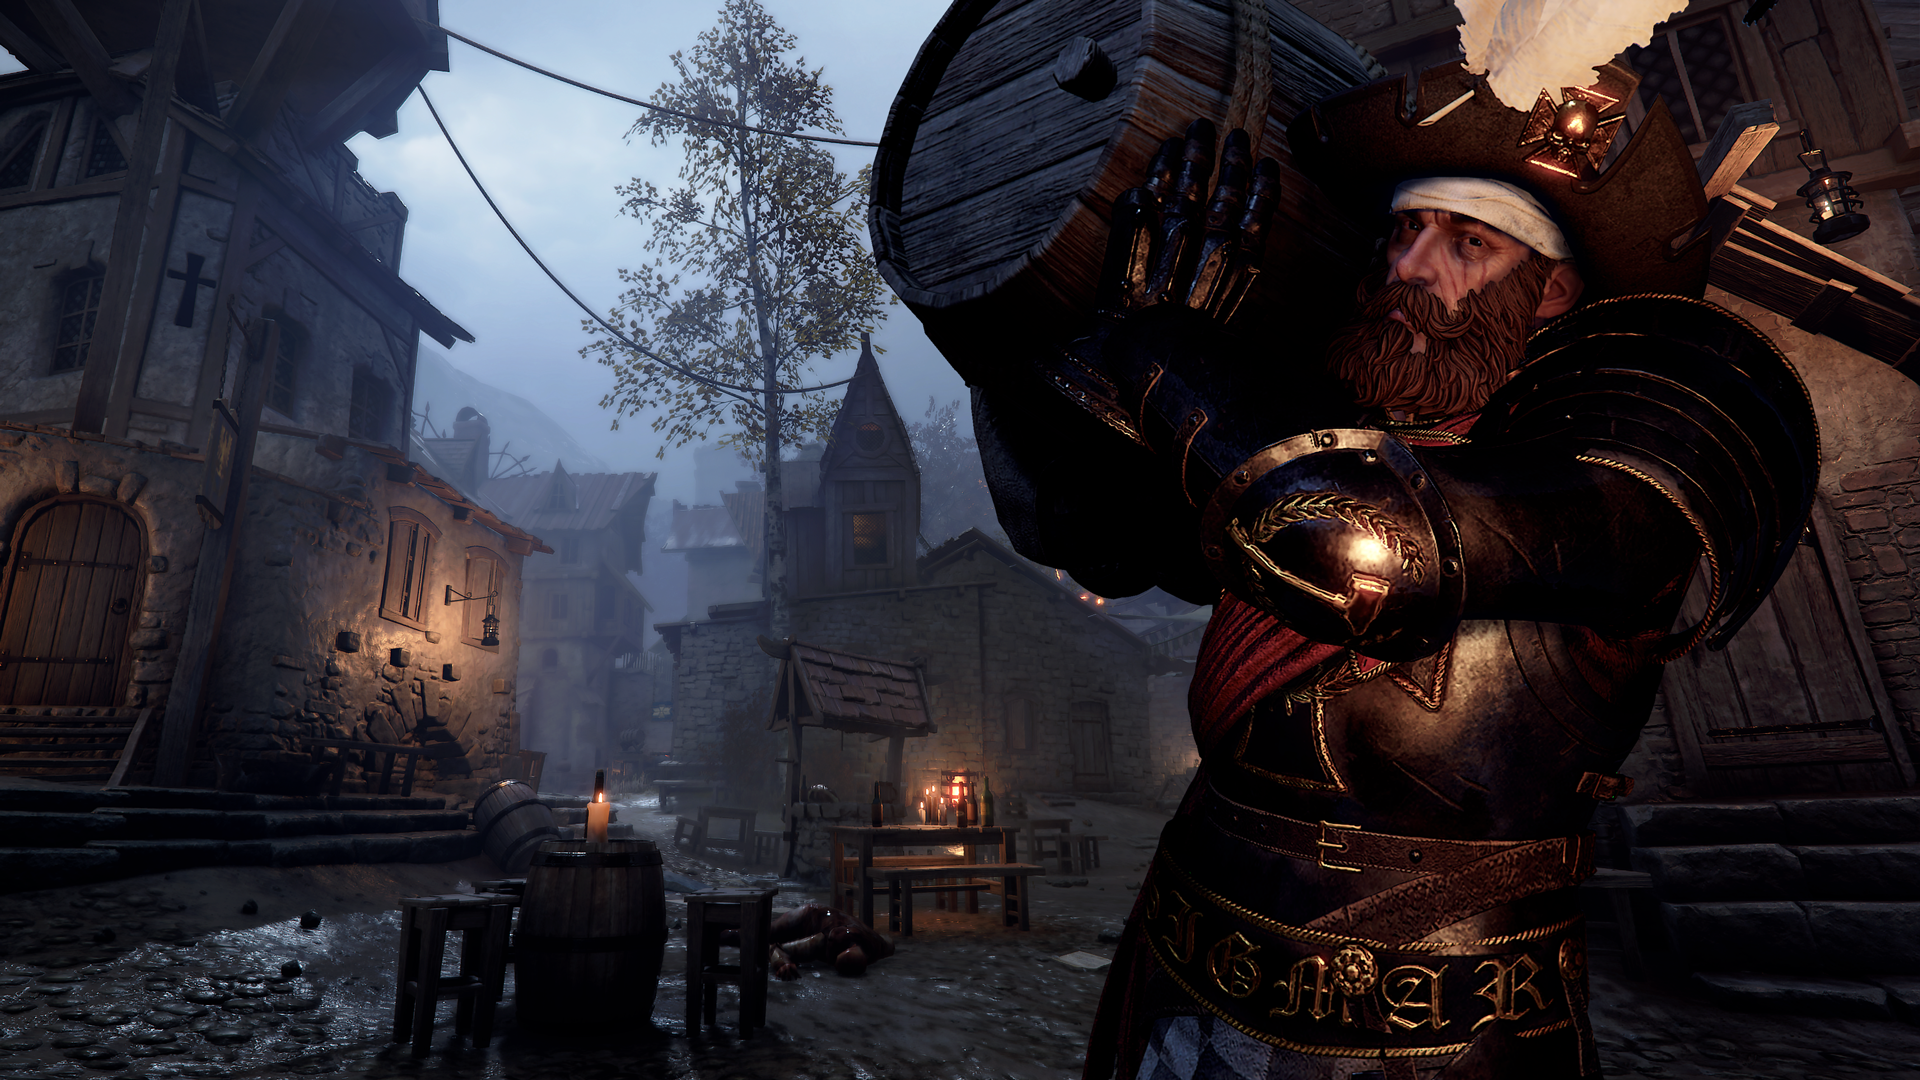 Let's celebrate! - Welcome to the 1-Year Anniversary of Warhammer: Vermintide 2's release on Xbox One.